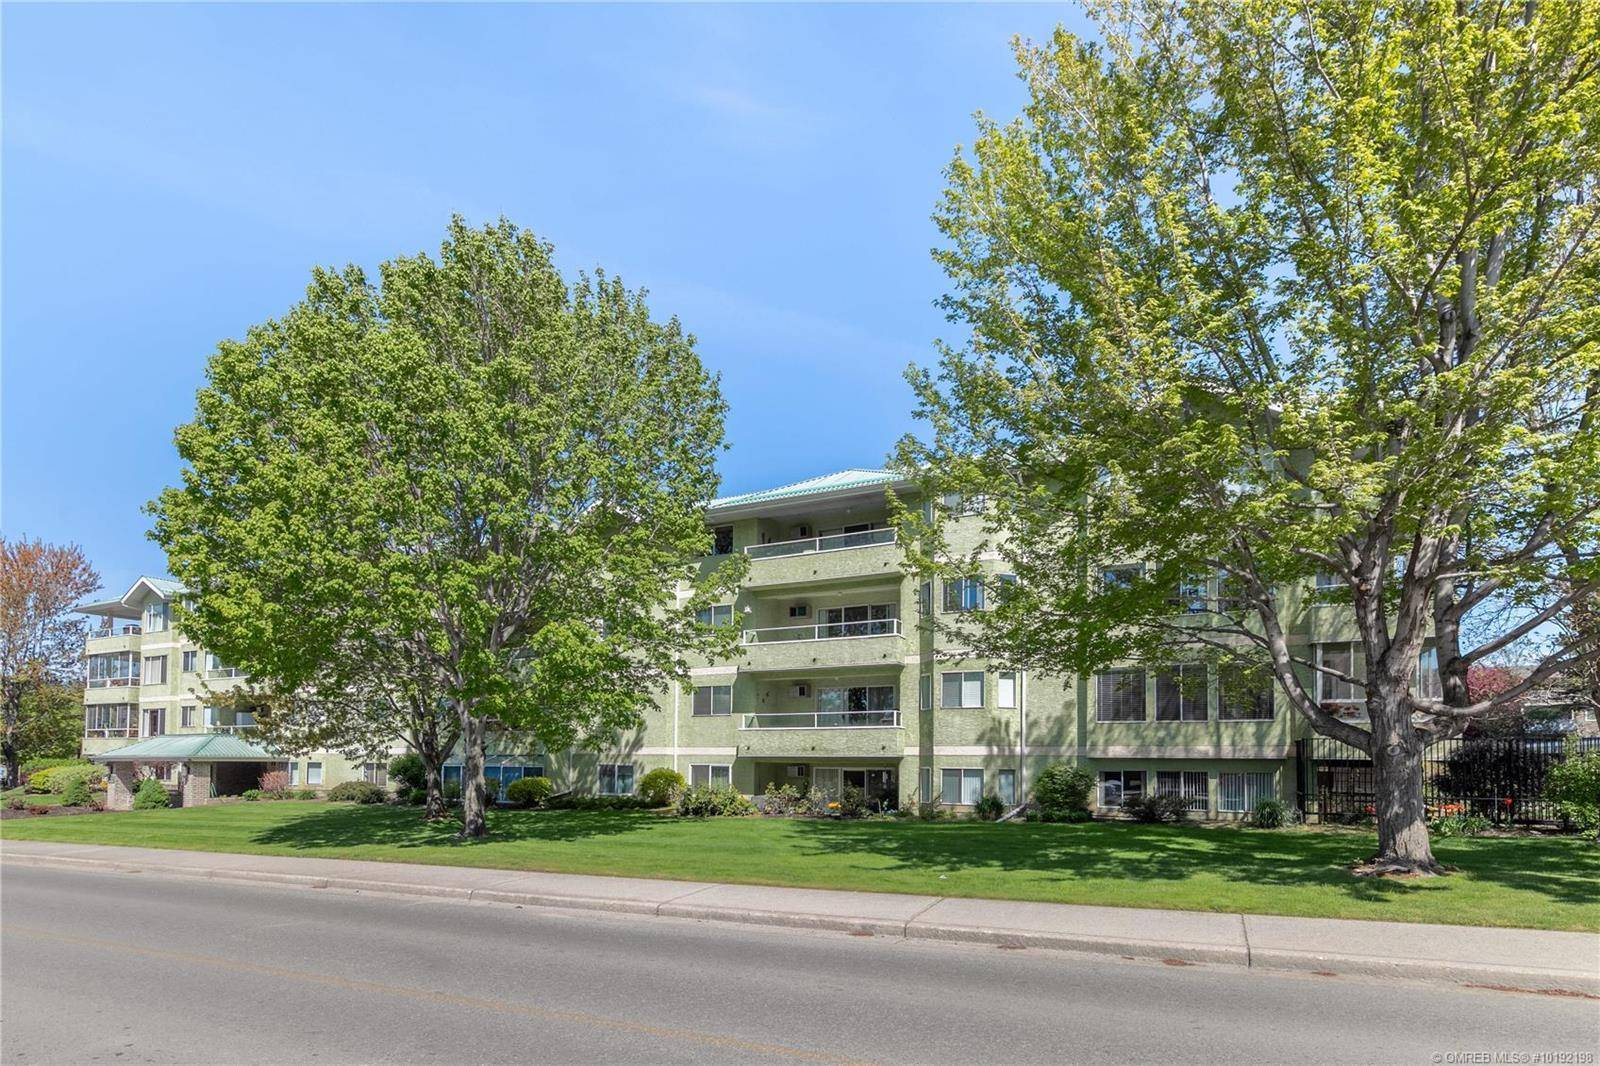 Condo for sale at 780 Houghton Rd Unit 301 Kelowna British Columbia - MLS: 10192198